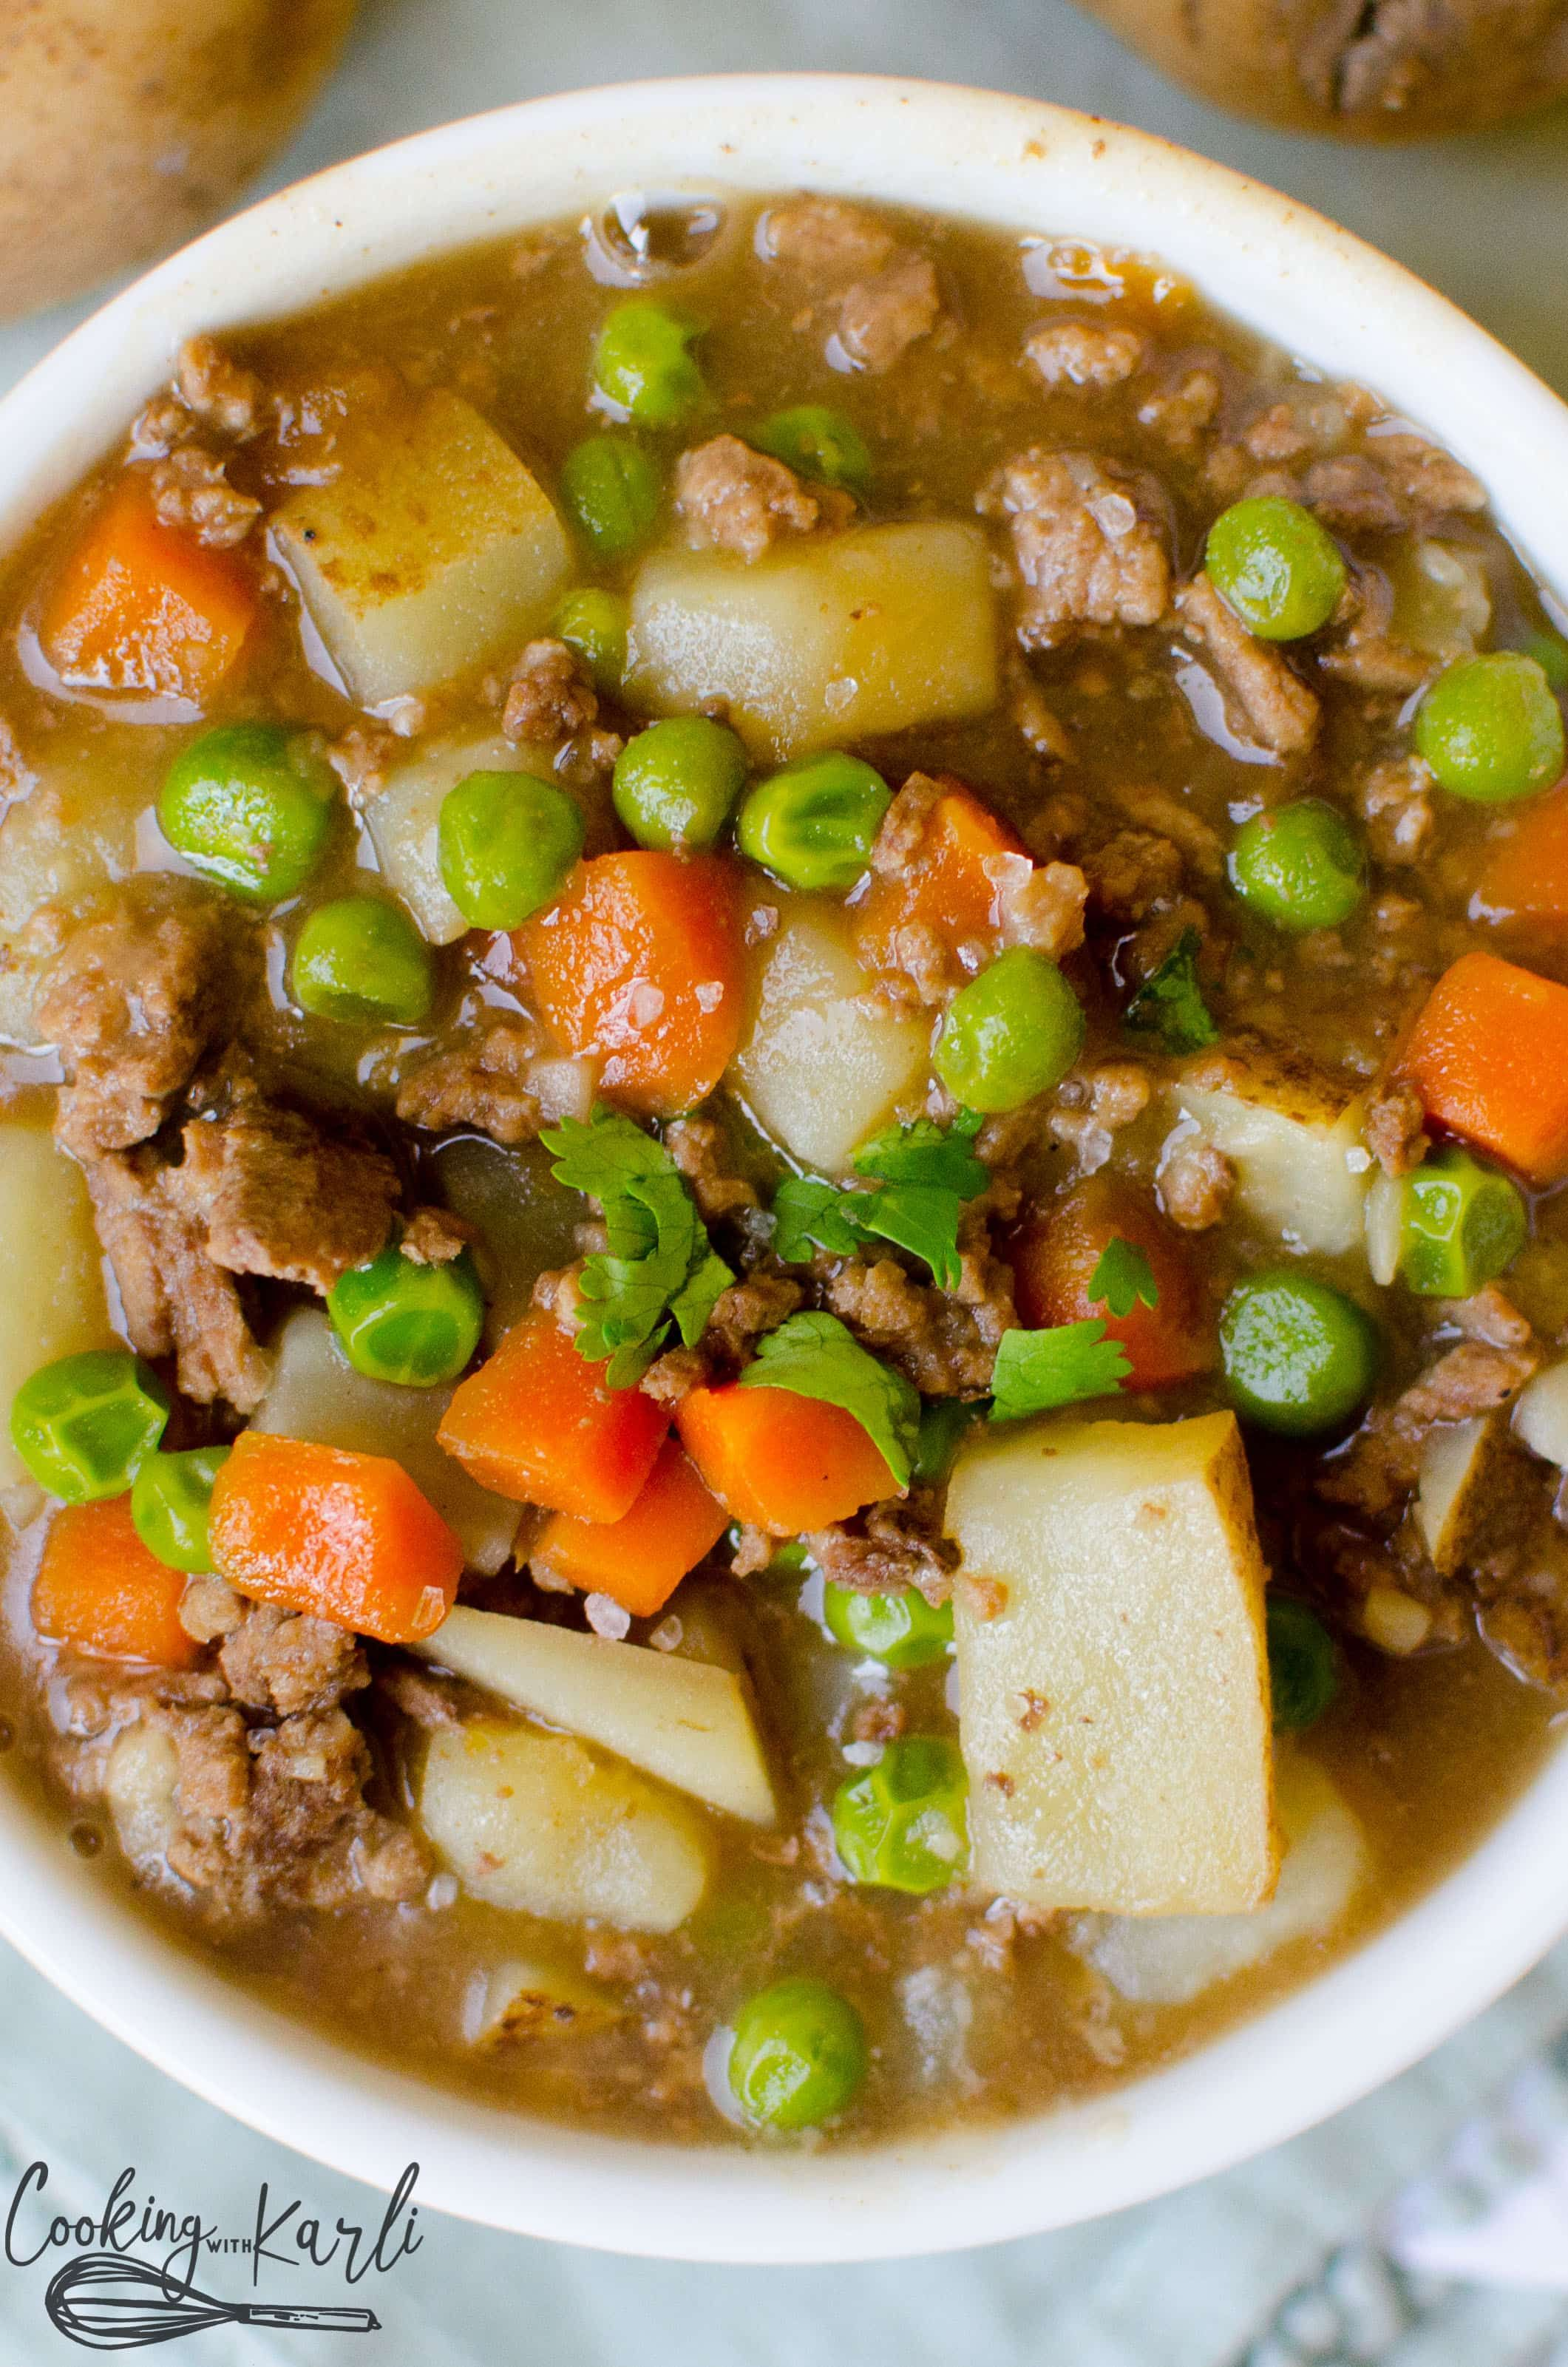 Instant Pot Ground Beef Stew Made With Potato Chunks Carrots Peas And Ground Beef Which Are Soup With Ground Beef Ground Beef Stews Instant Pot Soup Recipes